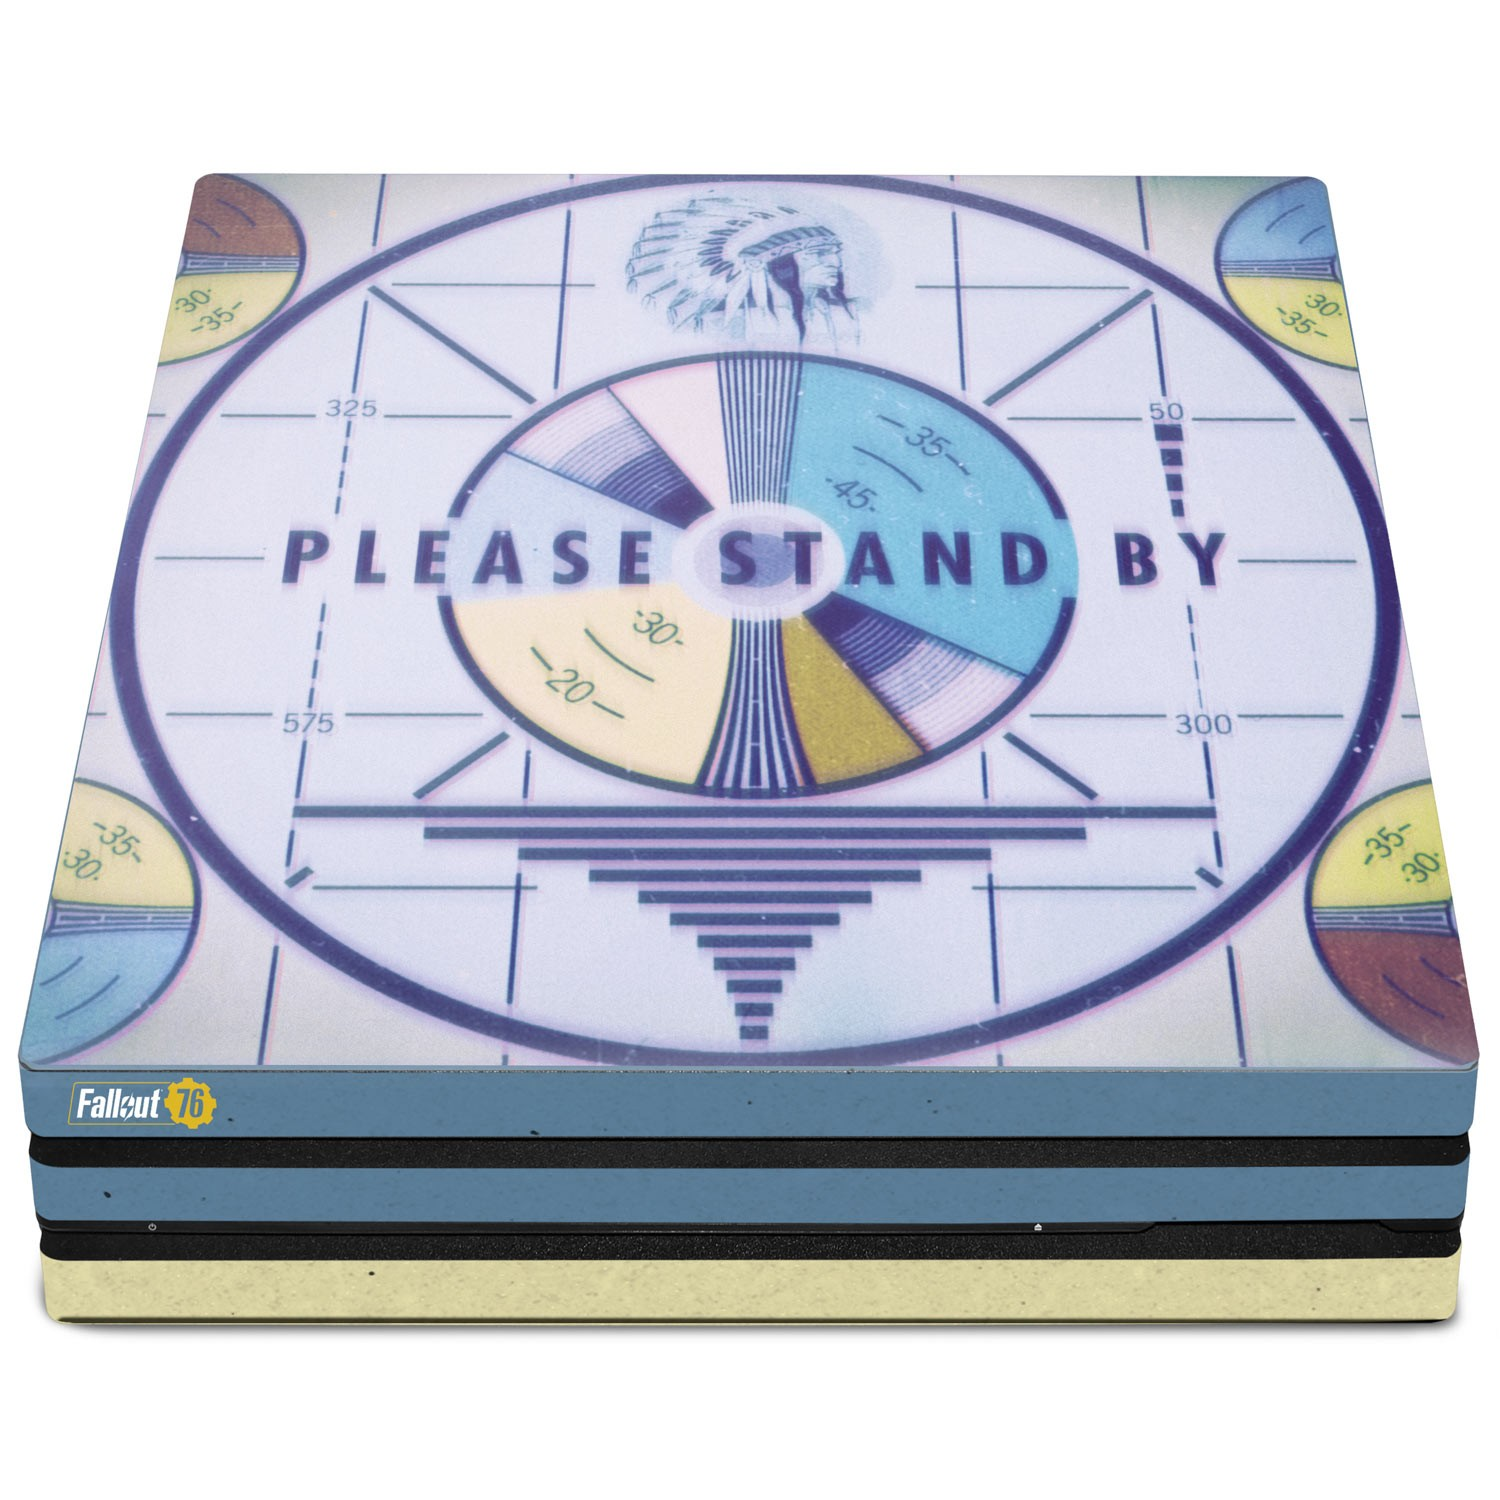 Officially Licensed Console Skin Bundle for PS4 Pro - Fallout 76 - Please Stand By